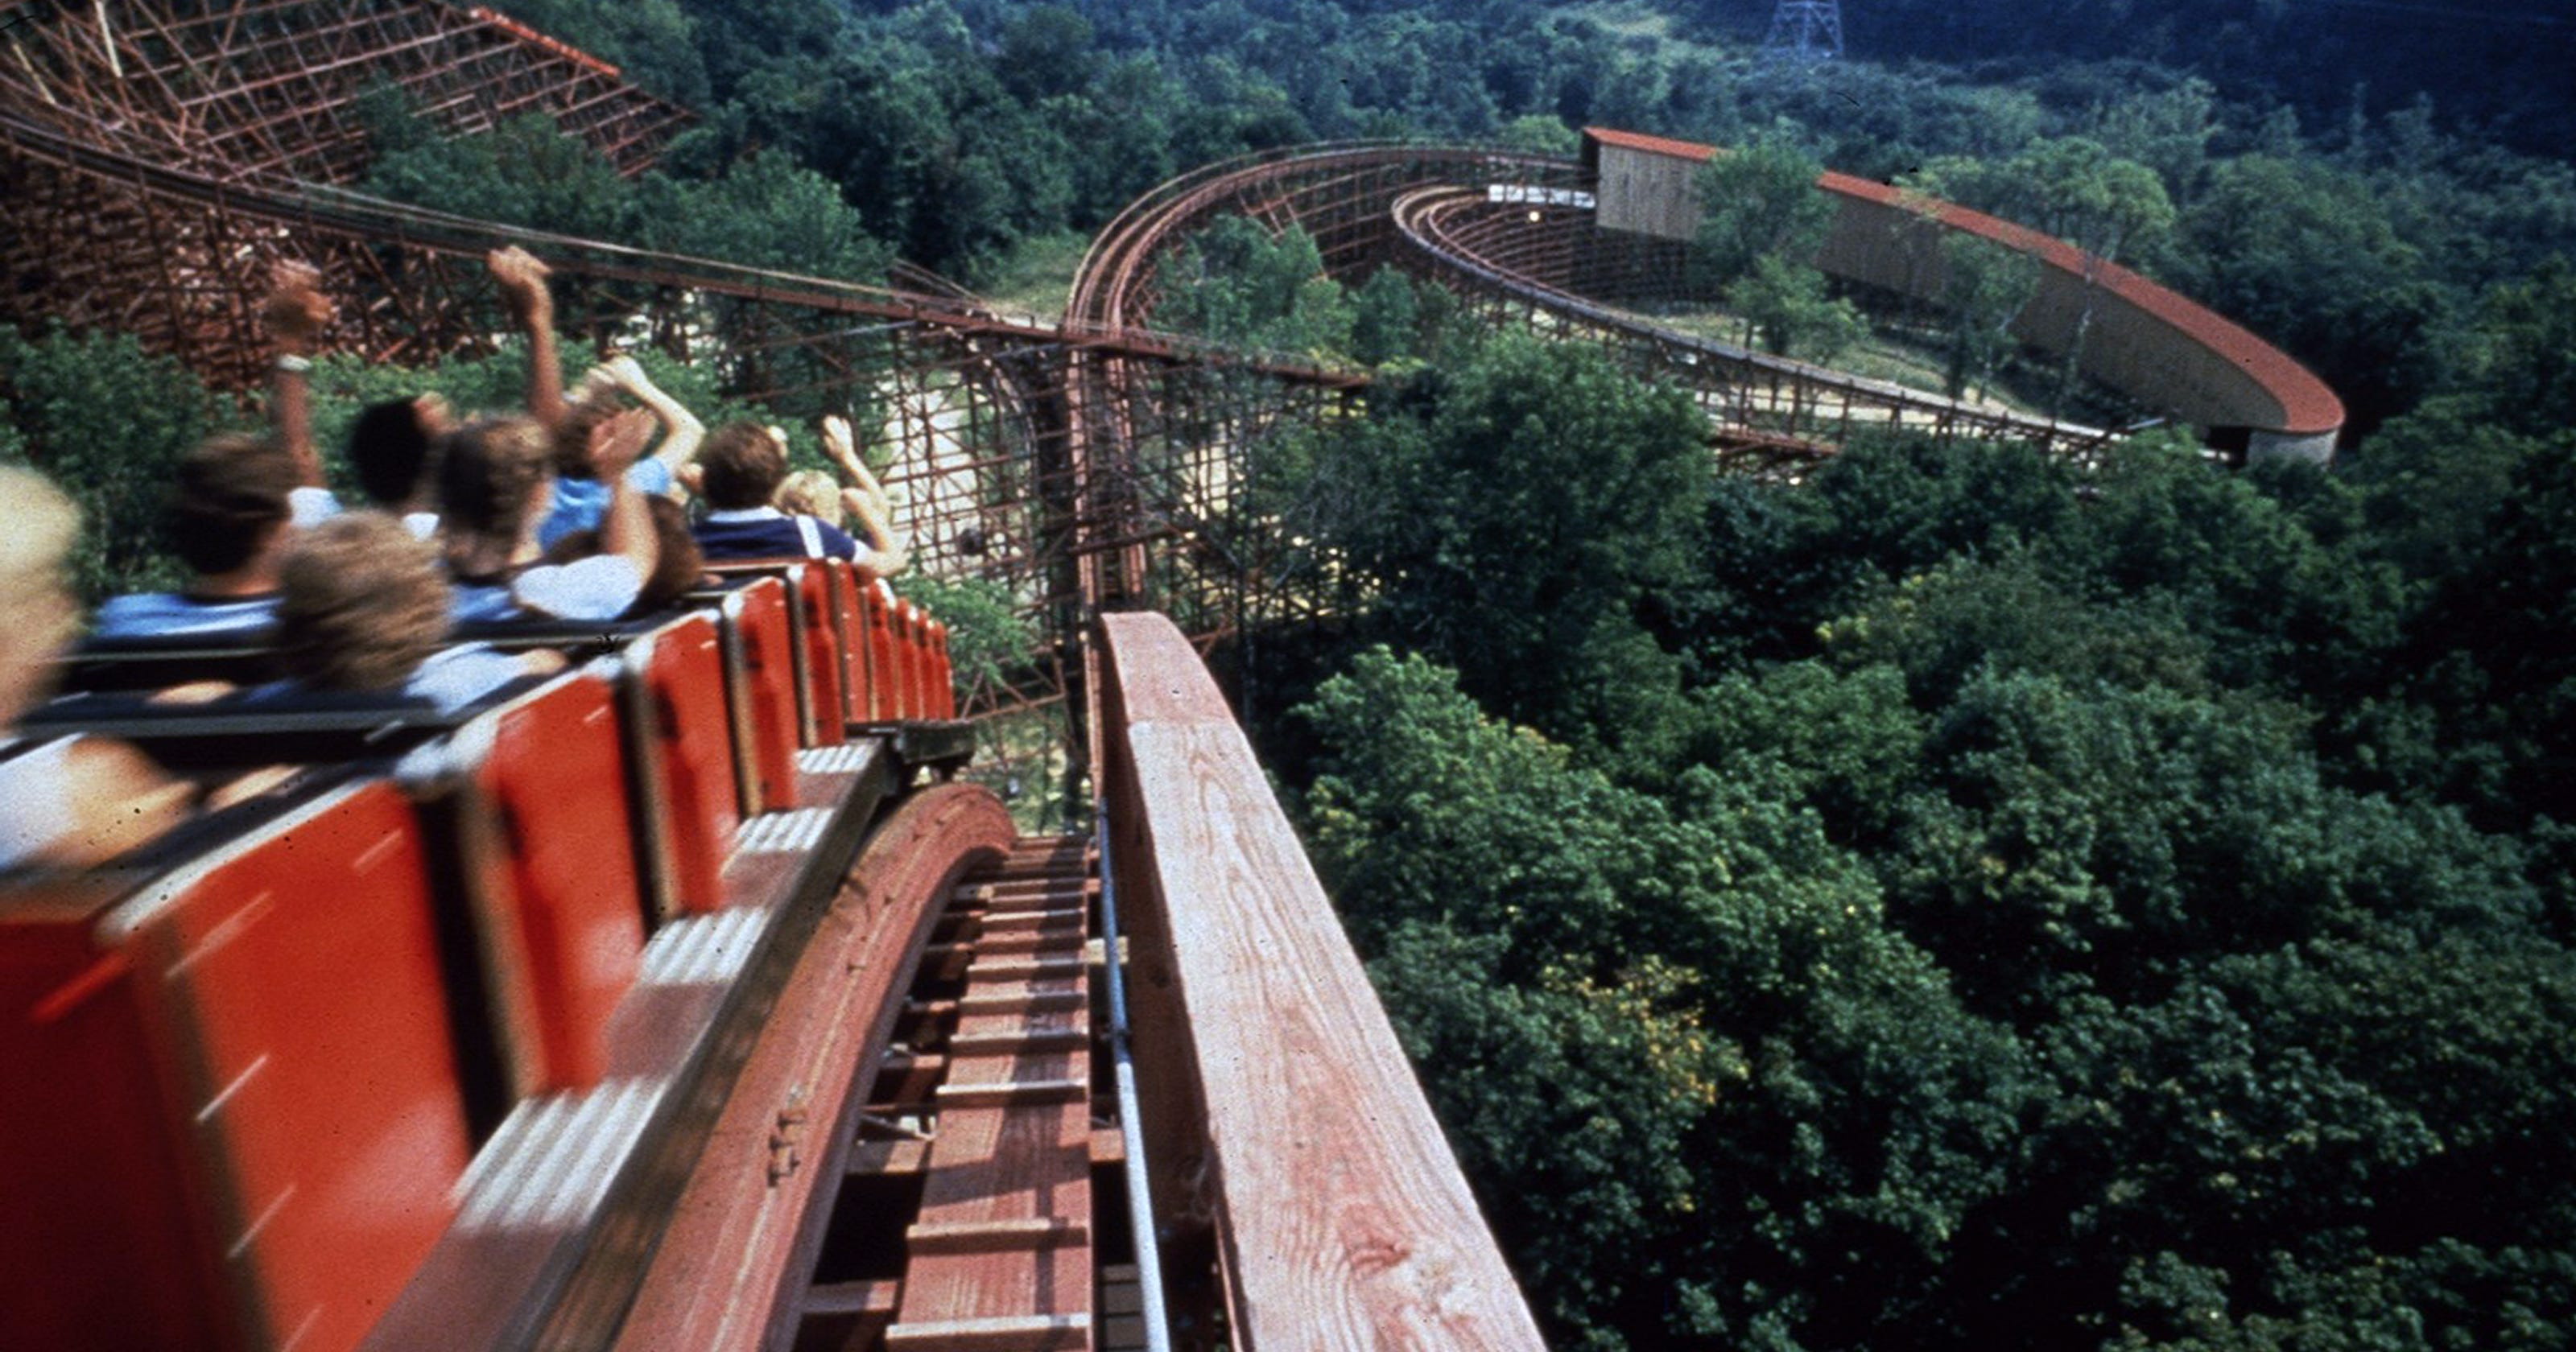 The Beast at Kings Island is Ohio's best roller coaster